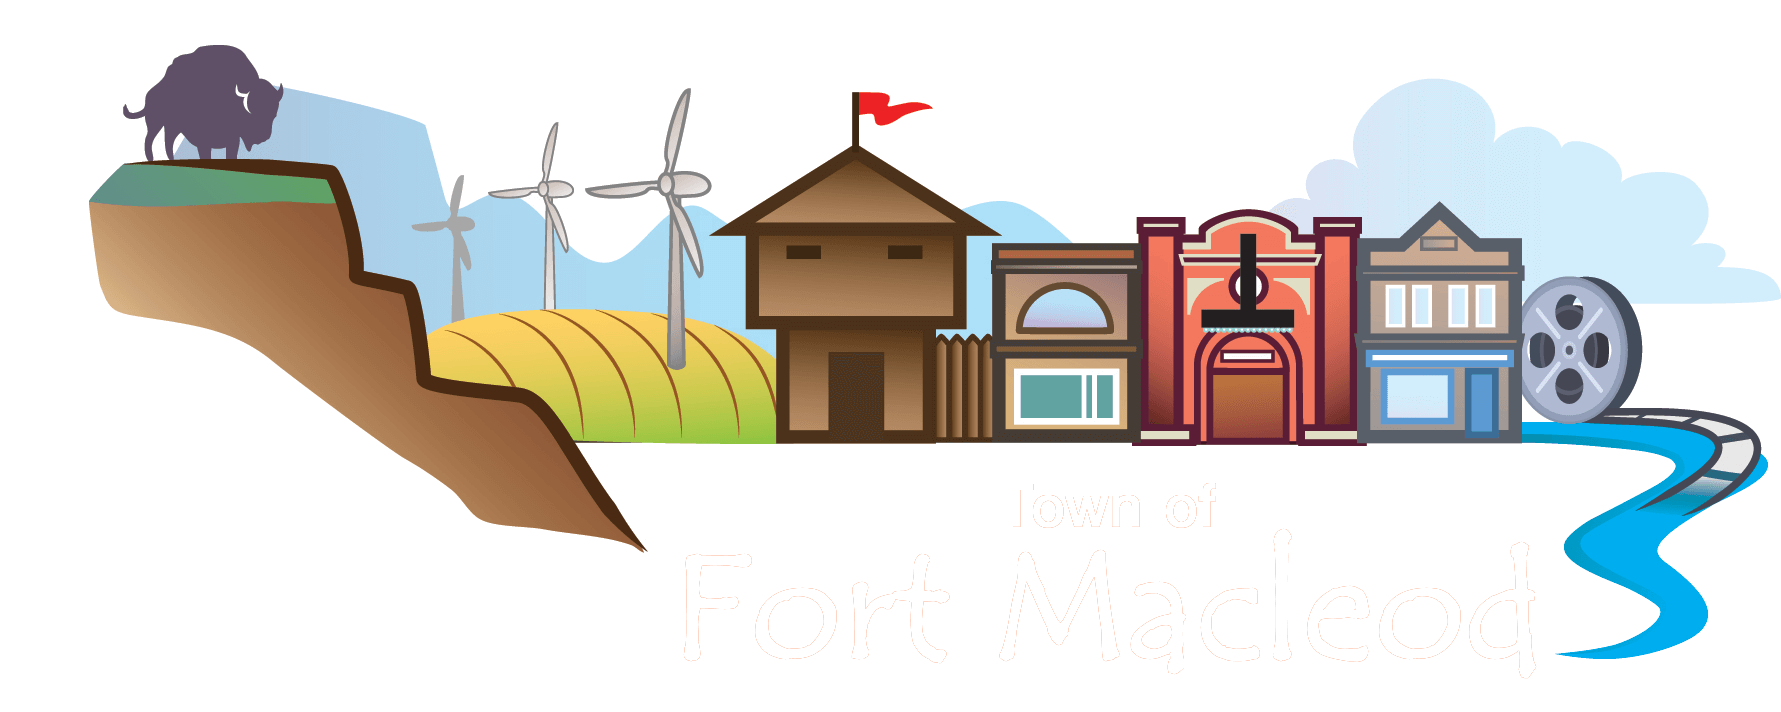 Town of Fort Macleod